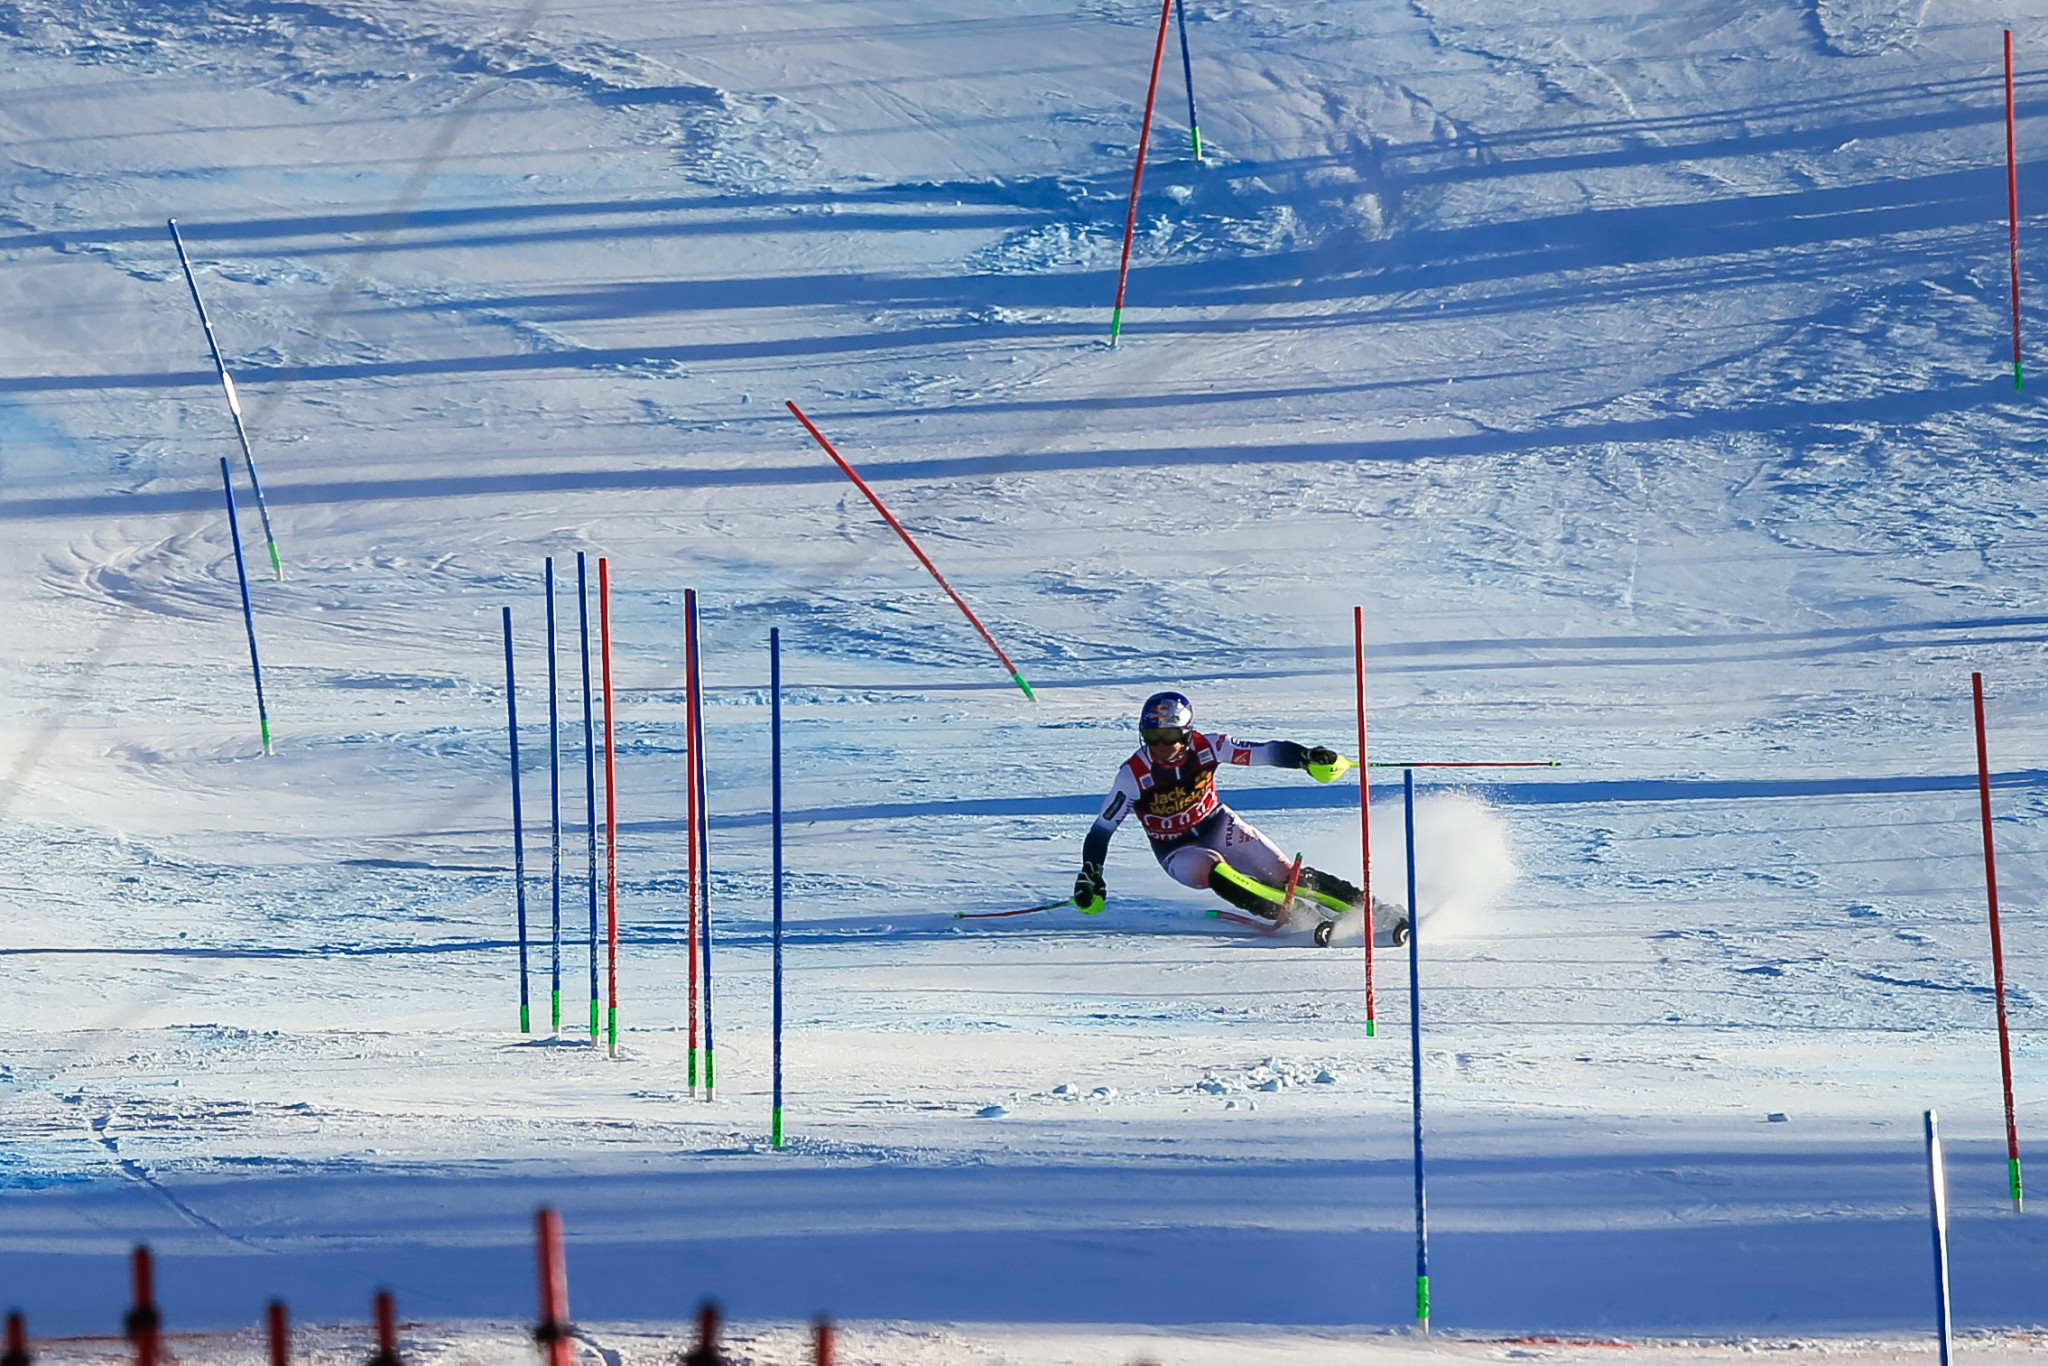 Pinturault Recovers To Claim Combined Victory At Fis Alpine Skiing World Cup